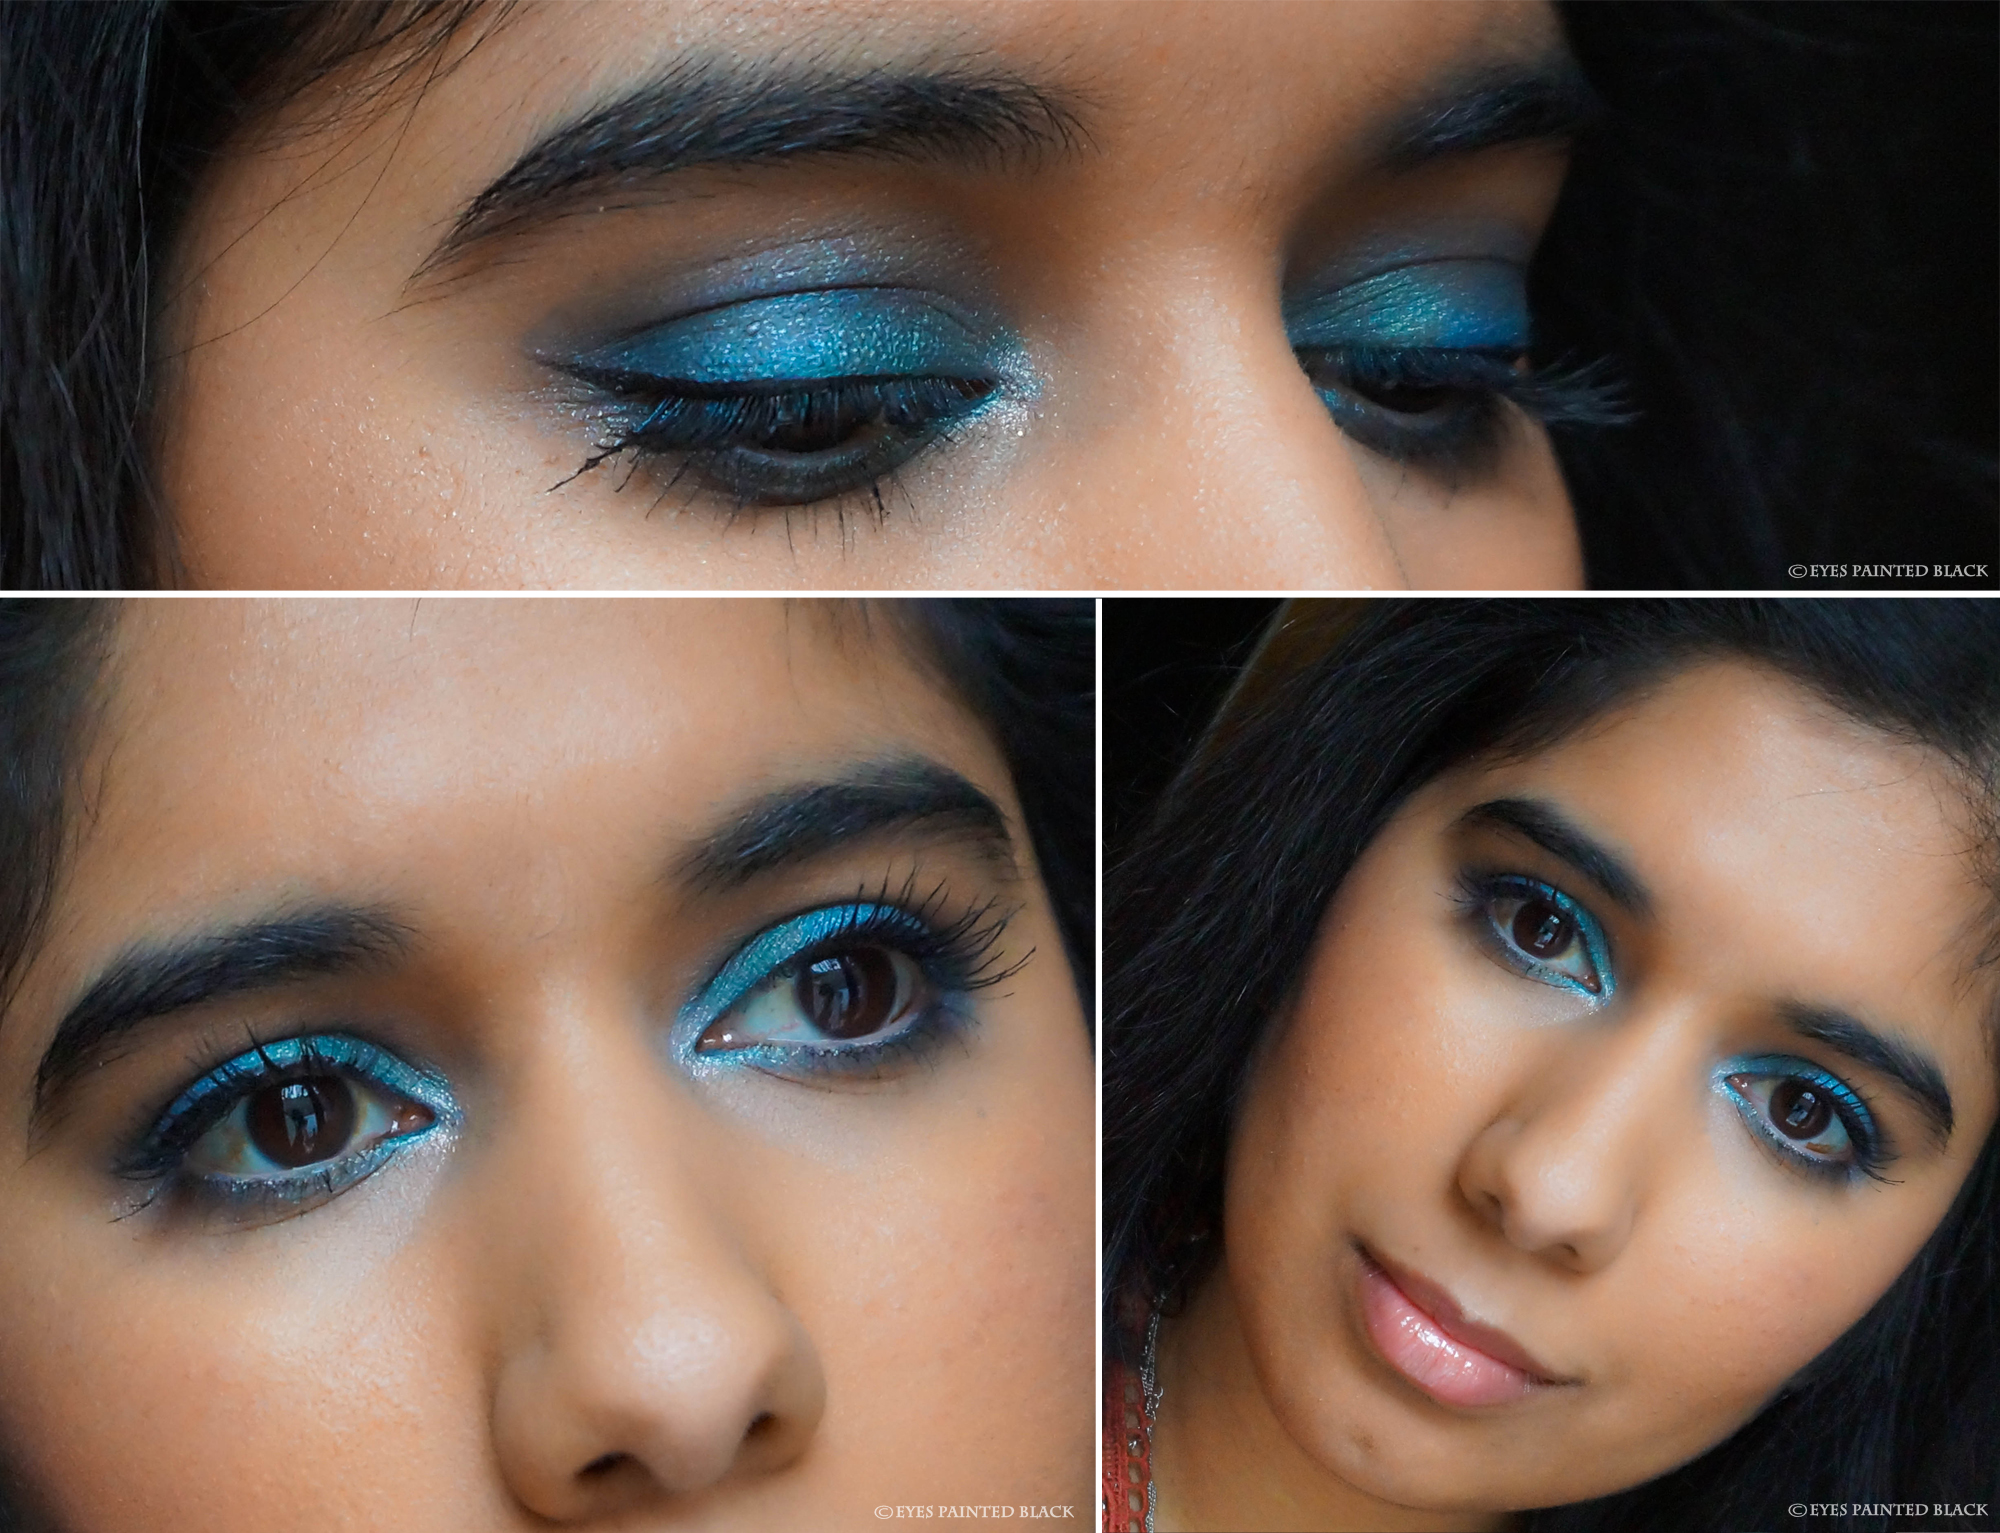 """Dolphin inspired look by Natasja from """"Eyes painted black"""""""